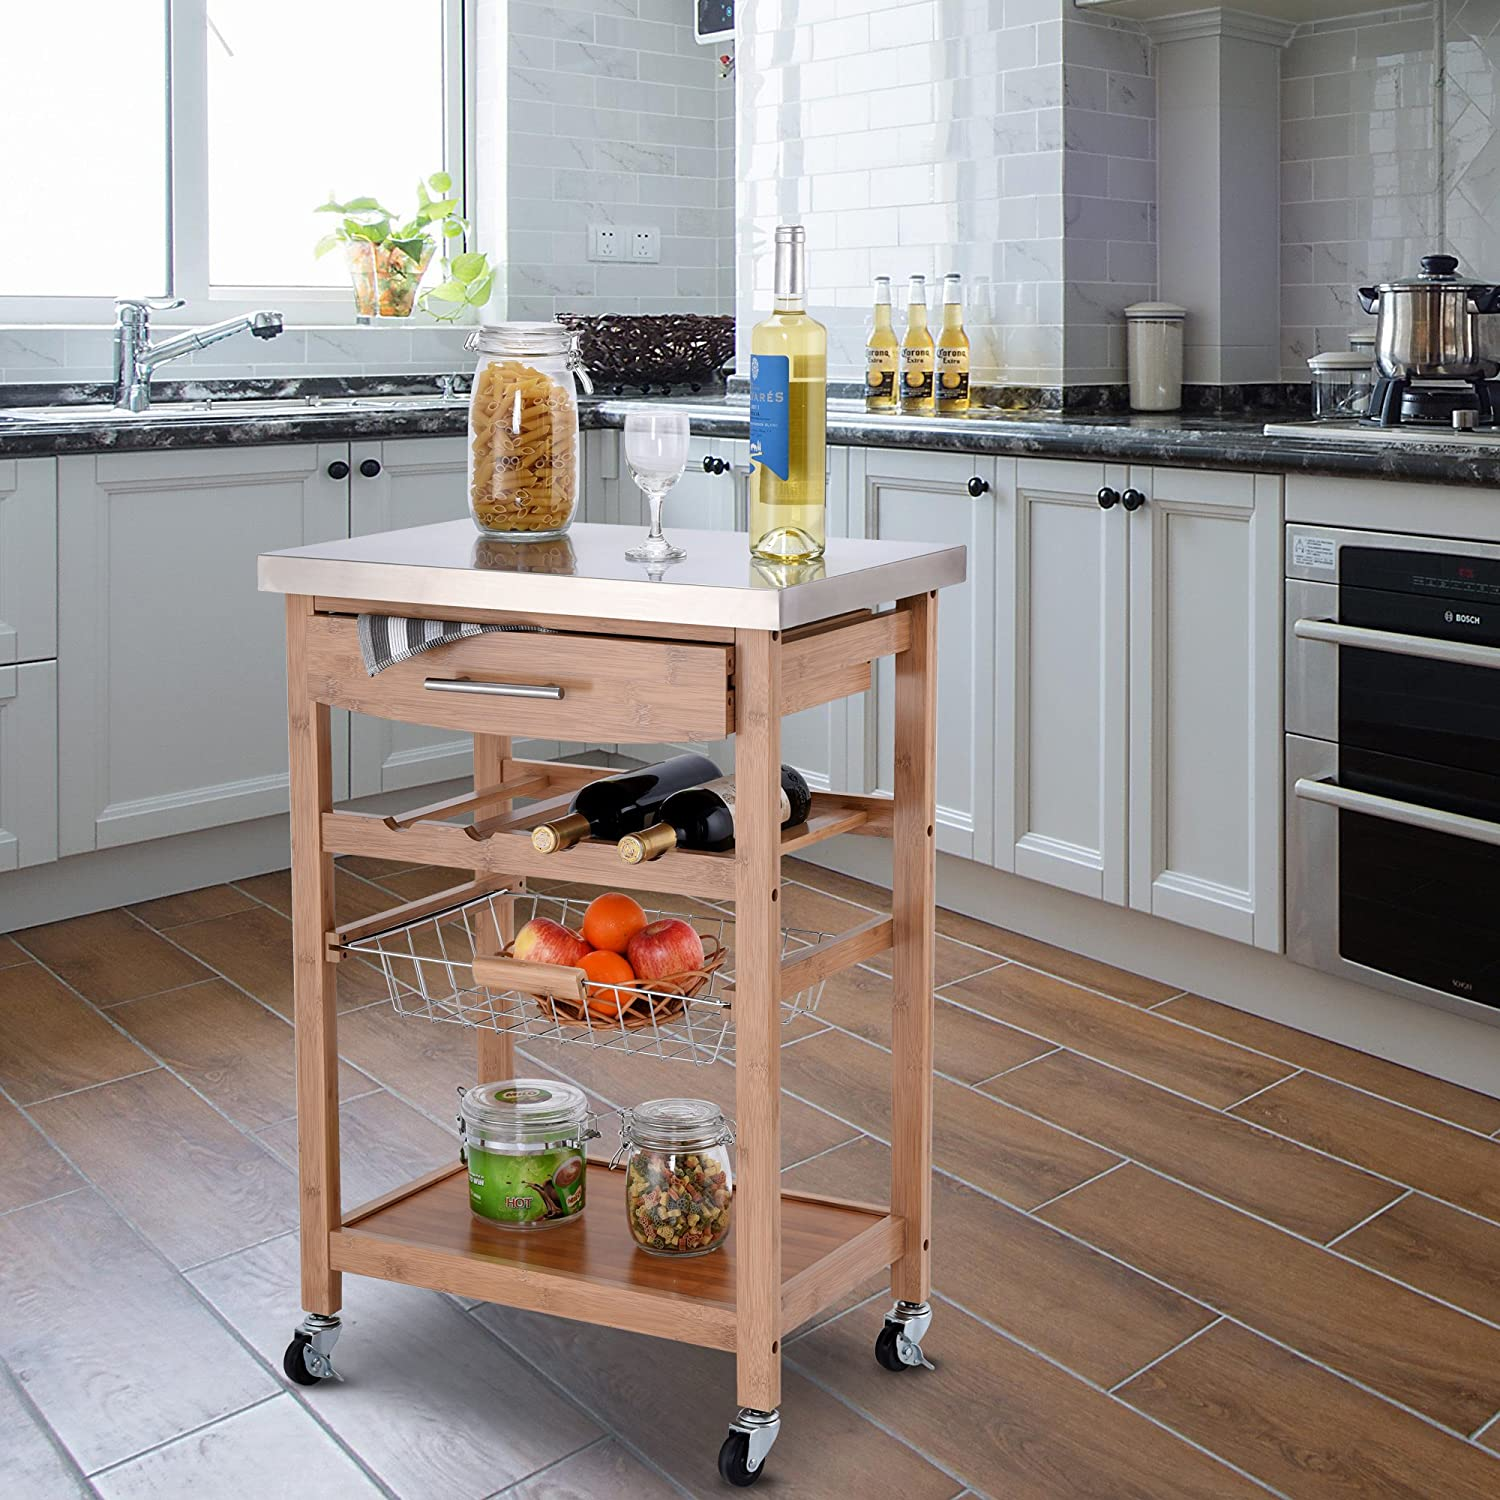 Giantex Kitchen Island Trolley Cart w Wine Rack Drawer Storage Shelf Basket Bamboo Island Serving Cart w Stainless Tabletop 4 Casters 2 Lockable